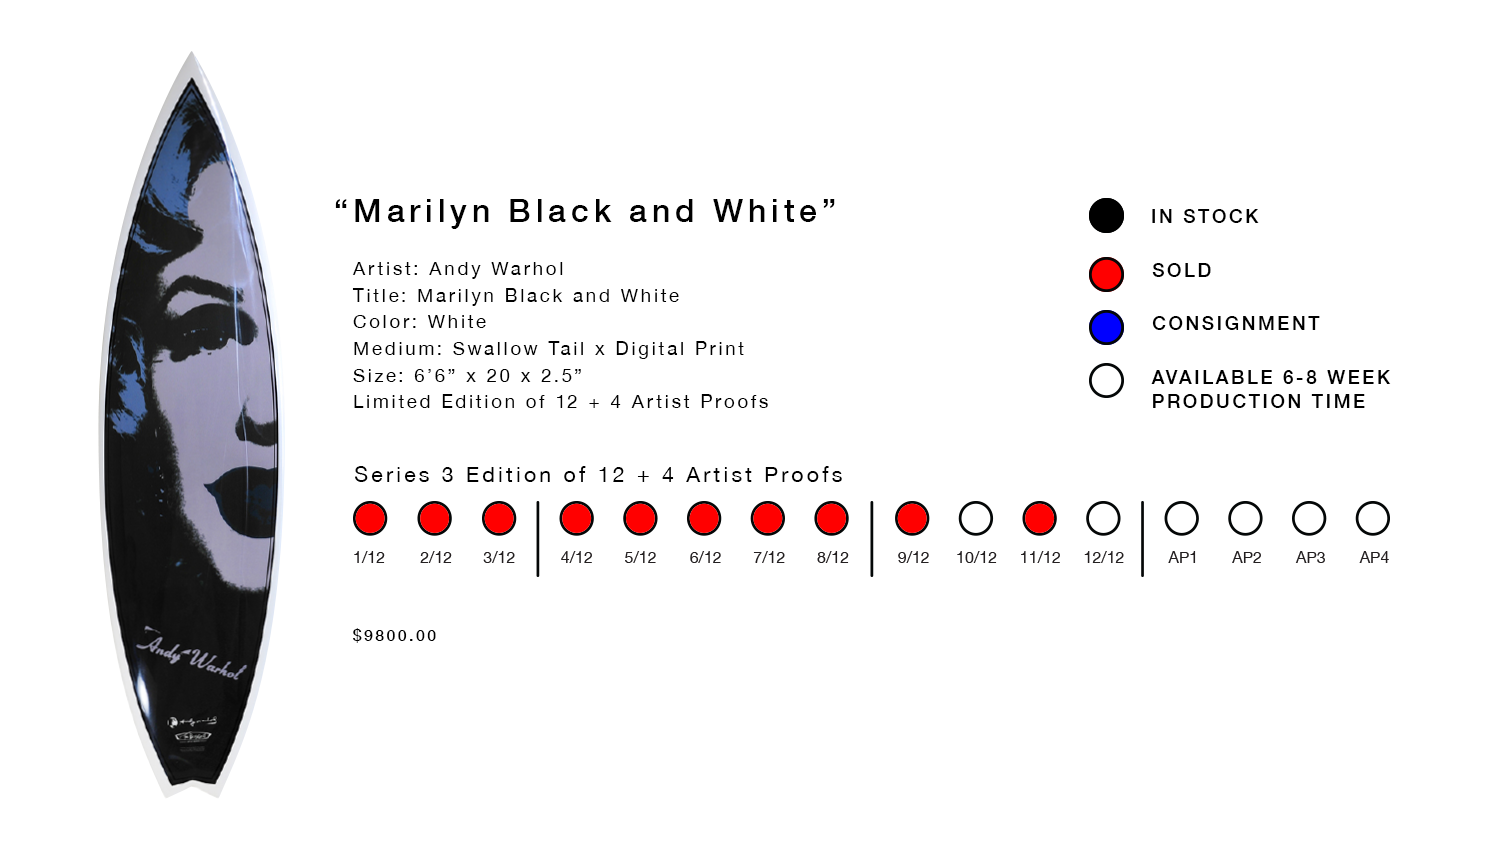 MARILYN_BLACK_AND_WHITE_AVAIL.png